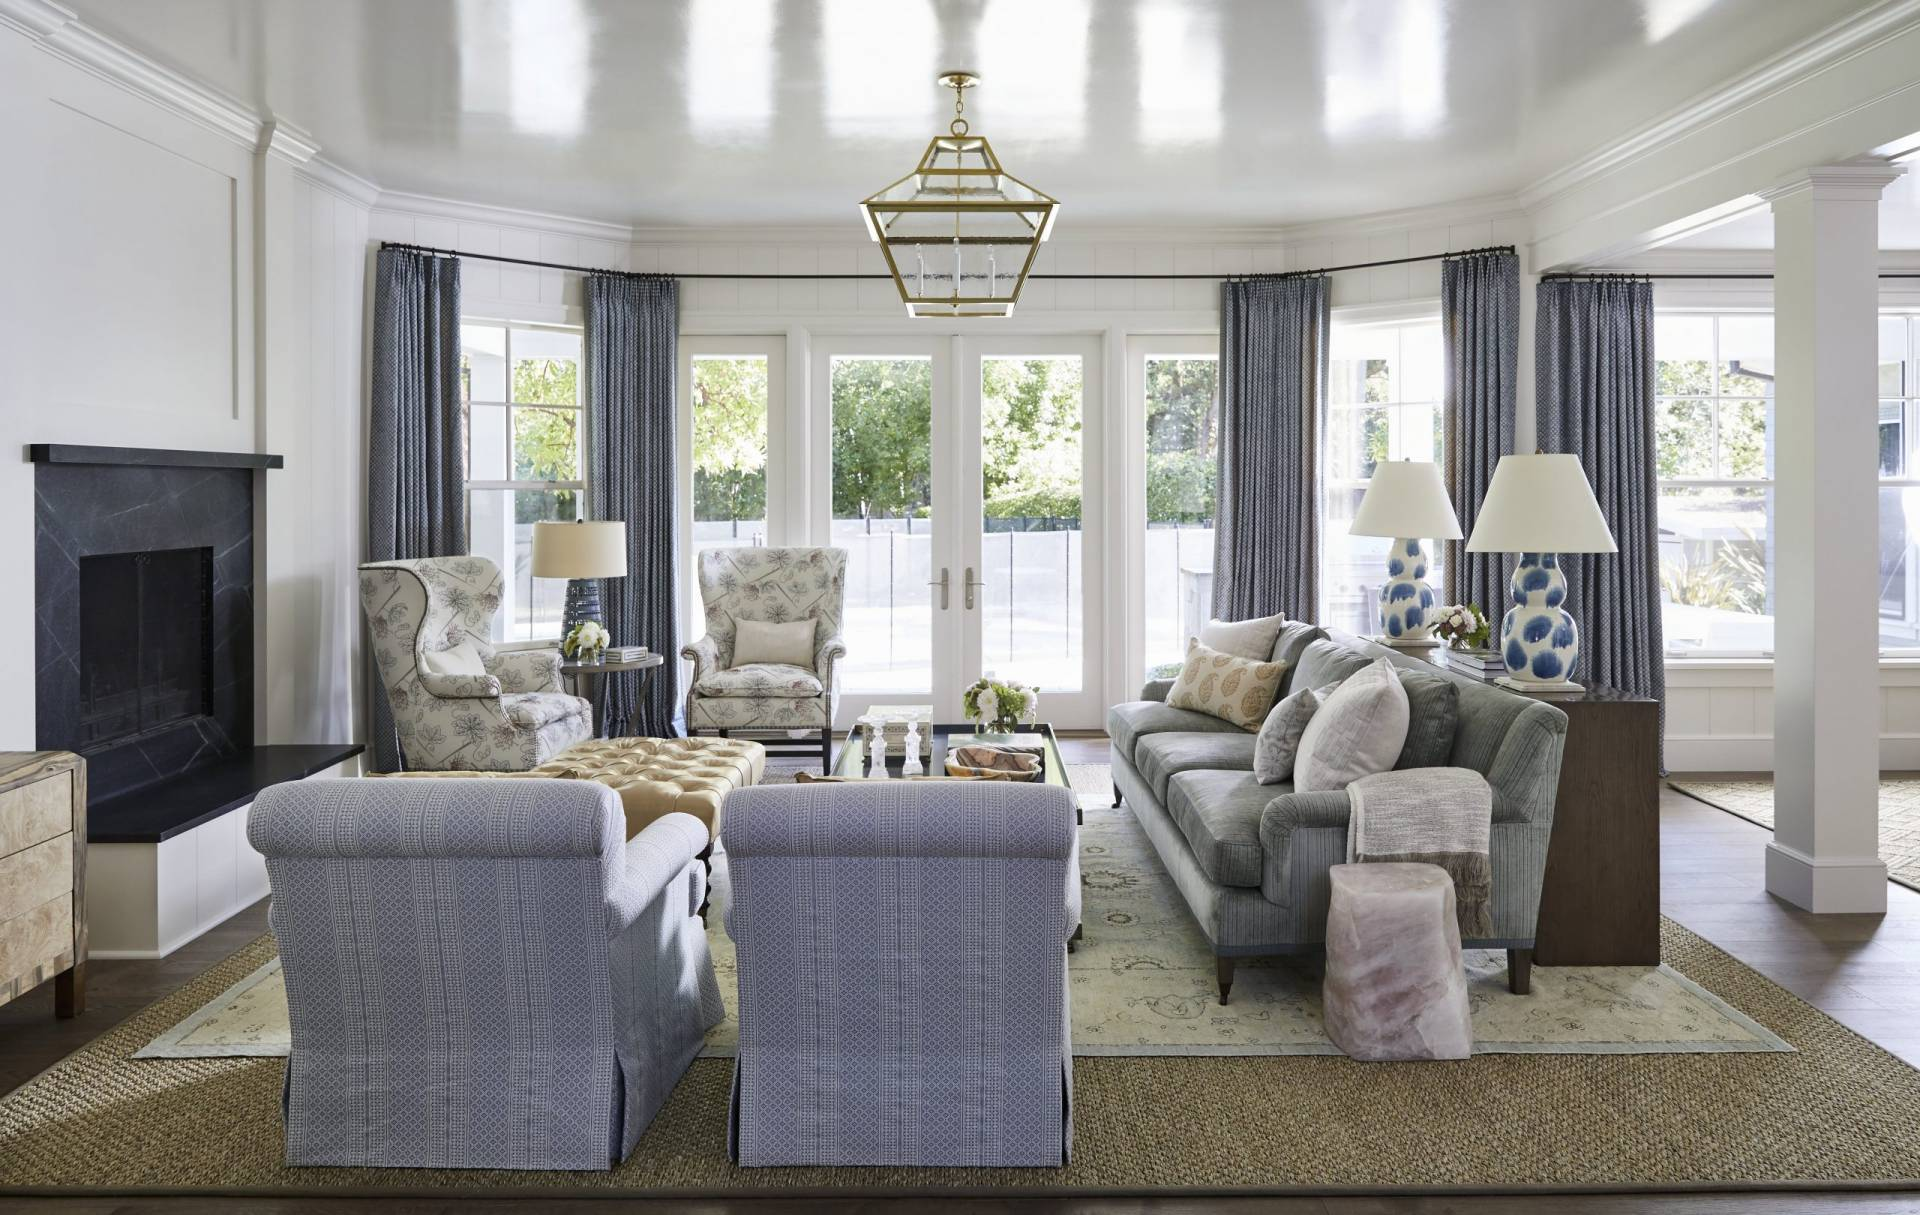 Wide view of living room with multiple style upholstered sofas and chairs